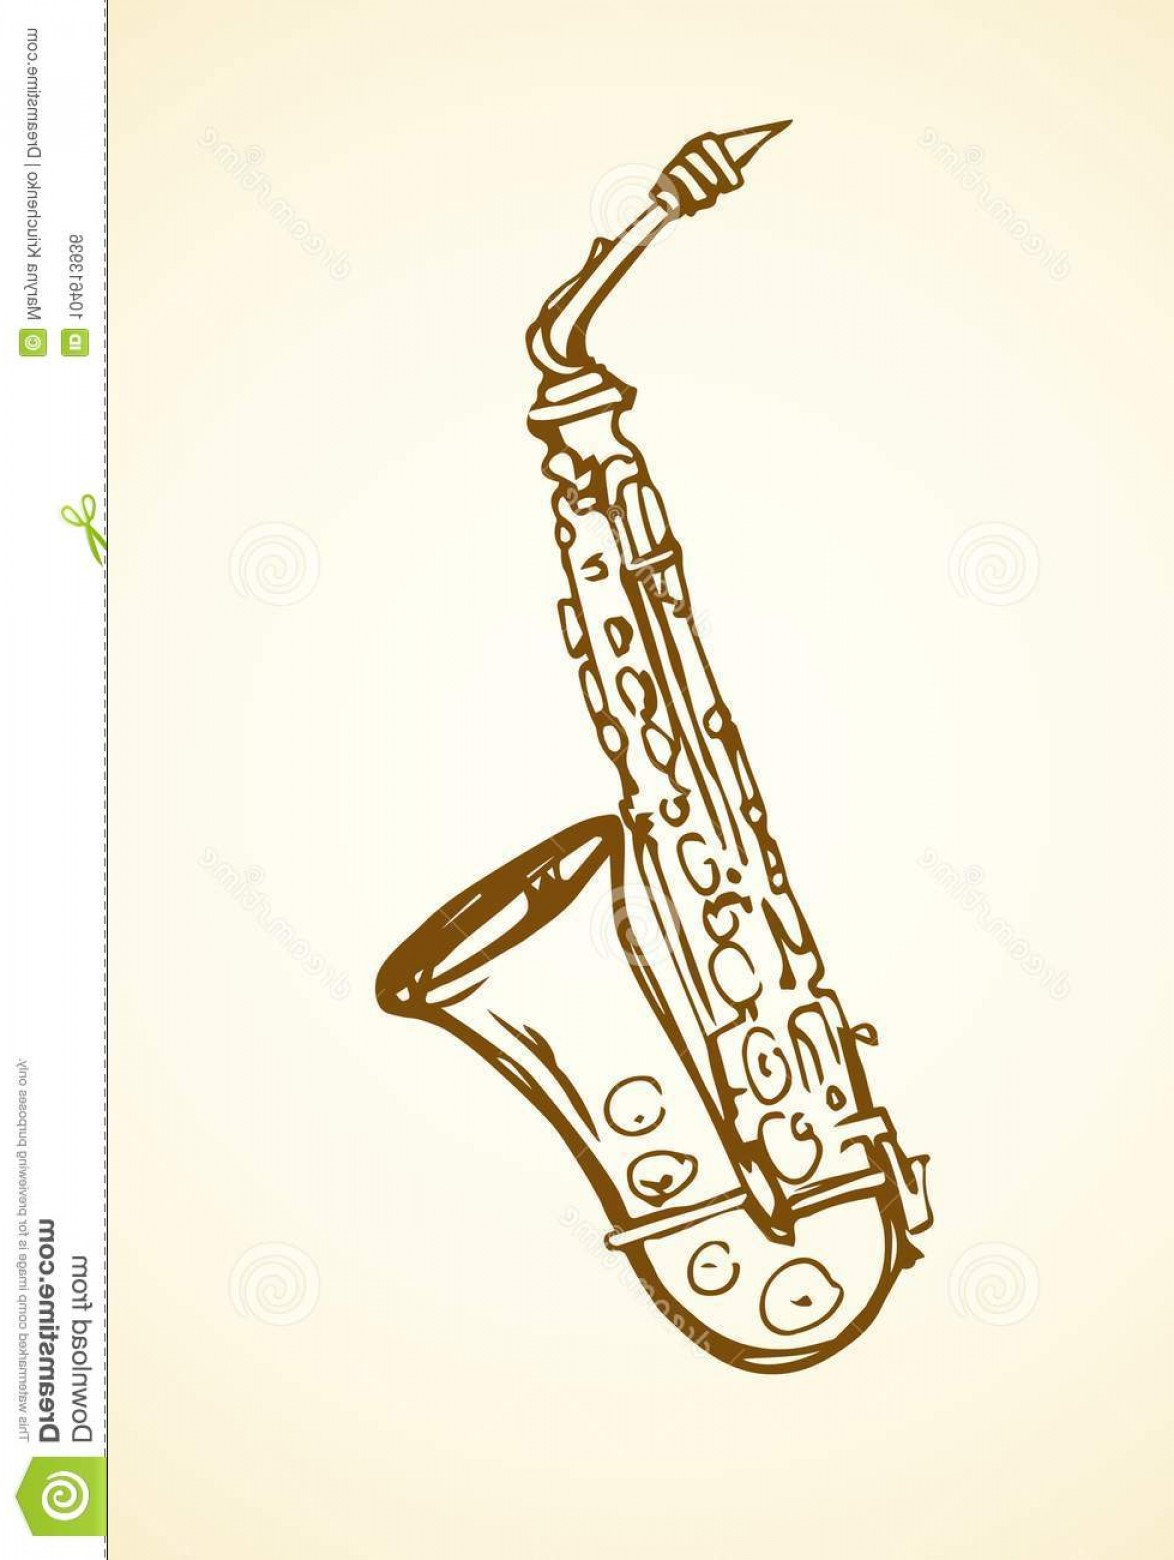 Alto Saxophone Vector Graphics: Pool Vector Drawing Old Mouthpiece Sax Isolated White Space Text Freehand Line Black Ink Hand Drawn Logo Emblem Sketchy Image